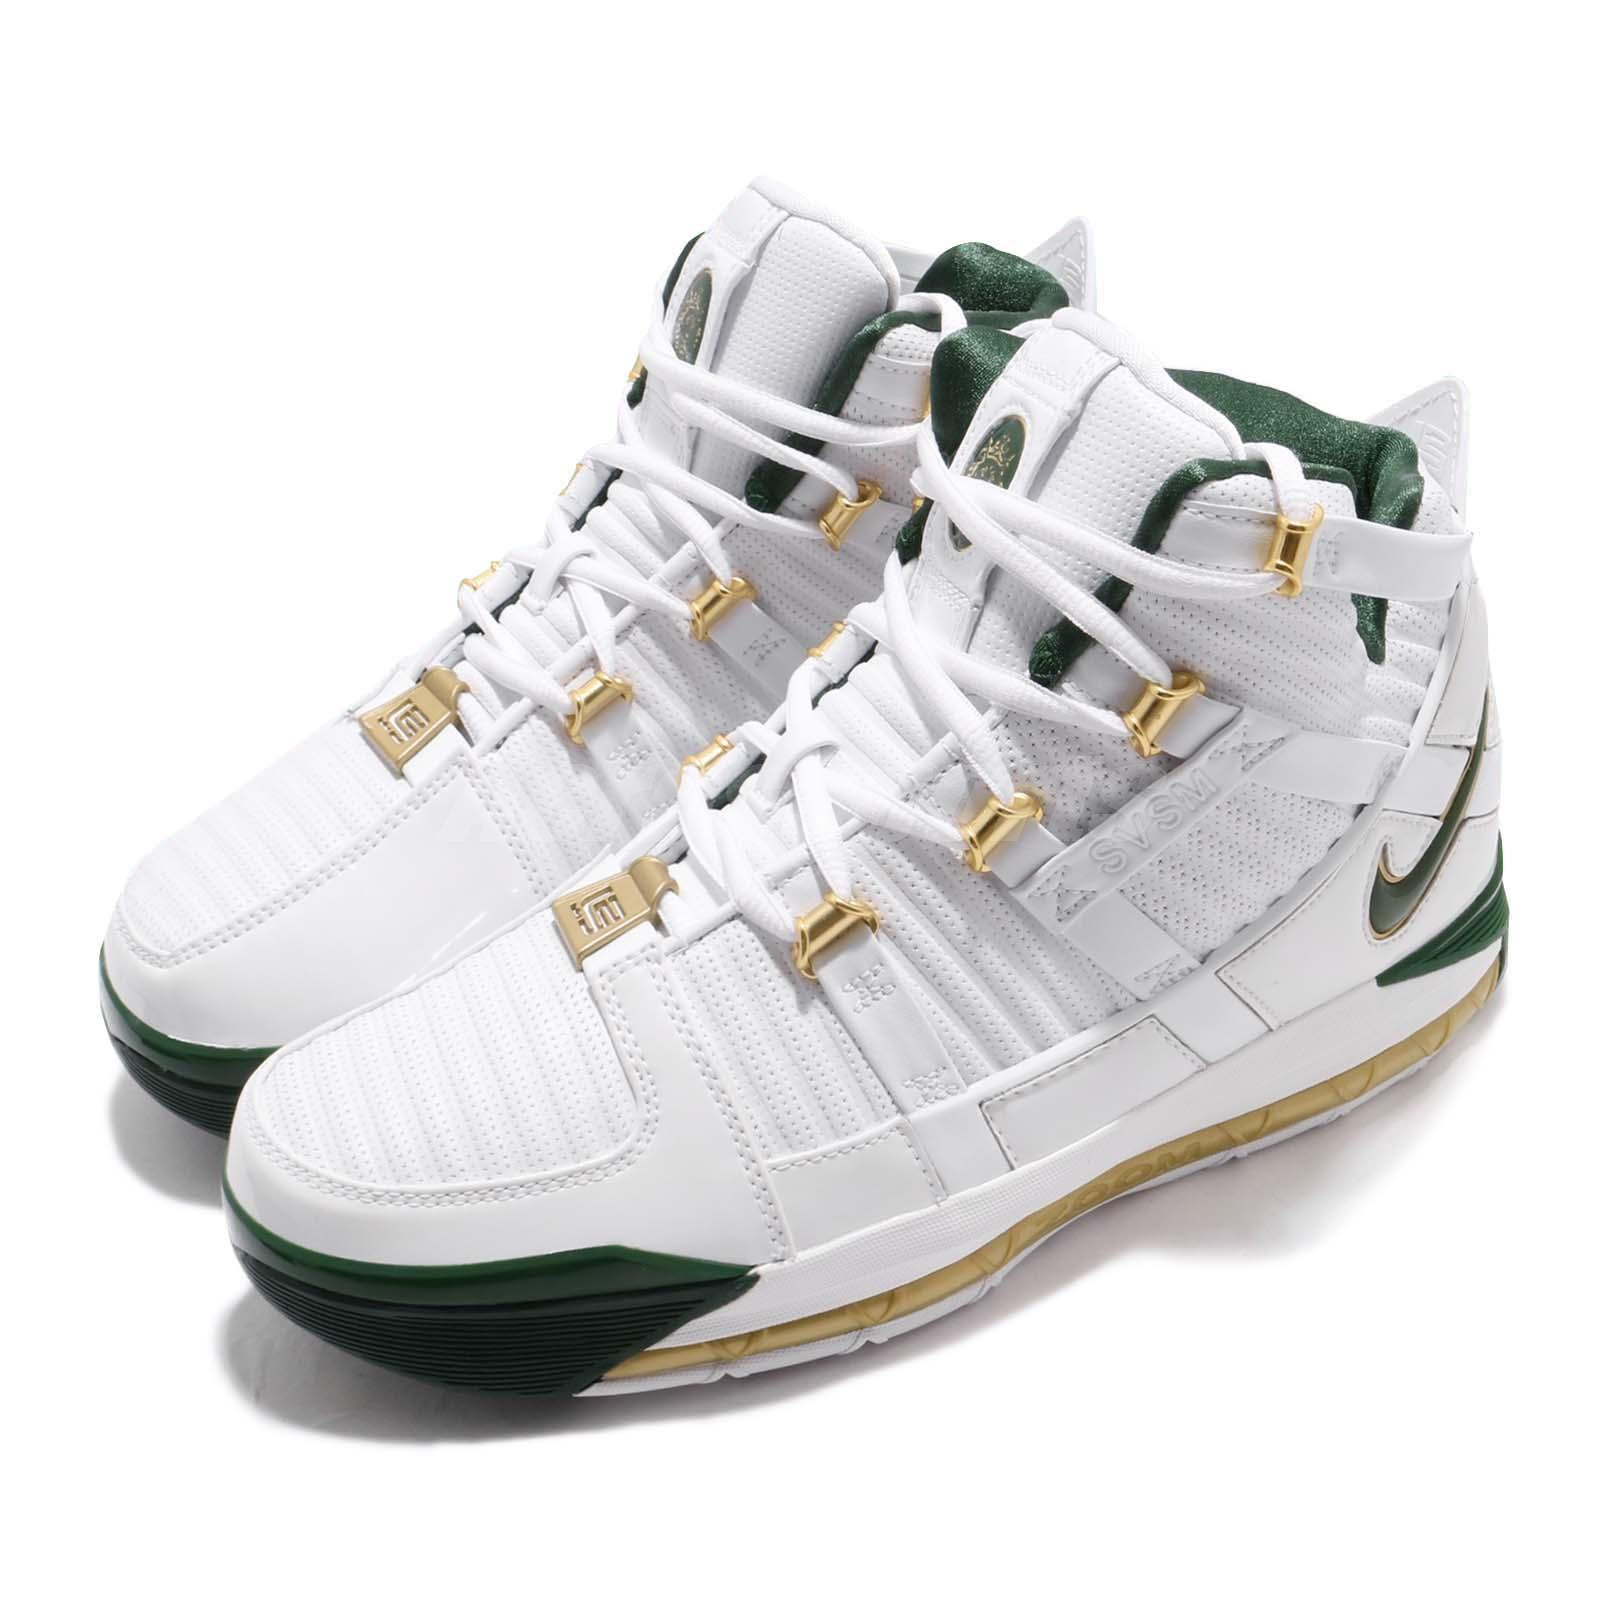 02b8e5bba07 Details about Nike Zoom Lebron III QS SVSM Home White Green Men Basketball  Shoes AO2434-102